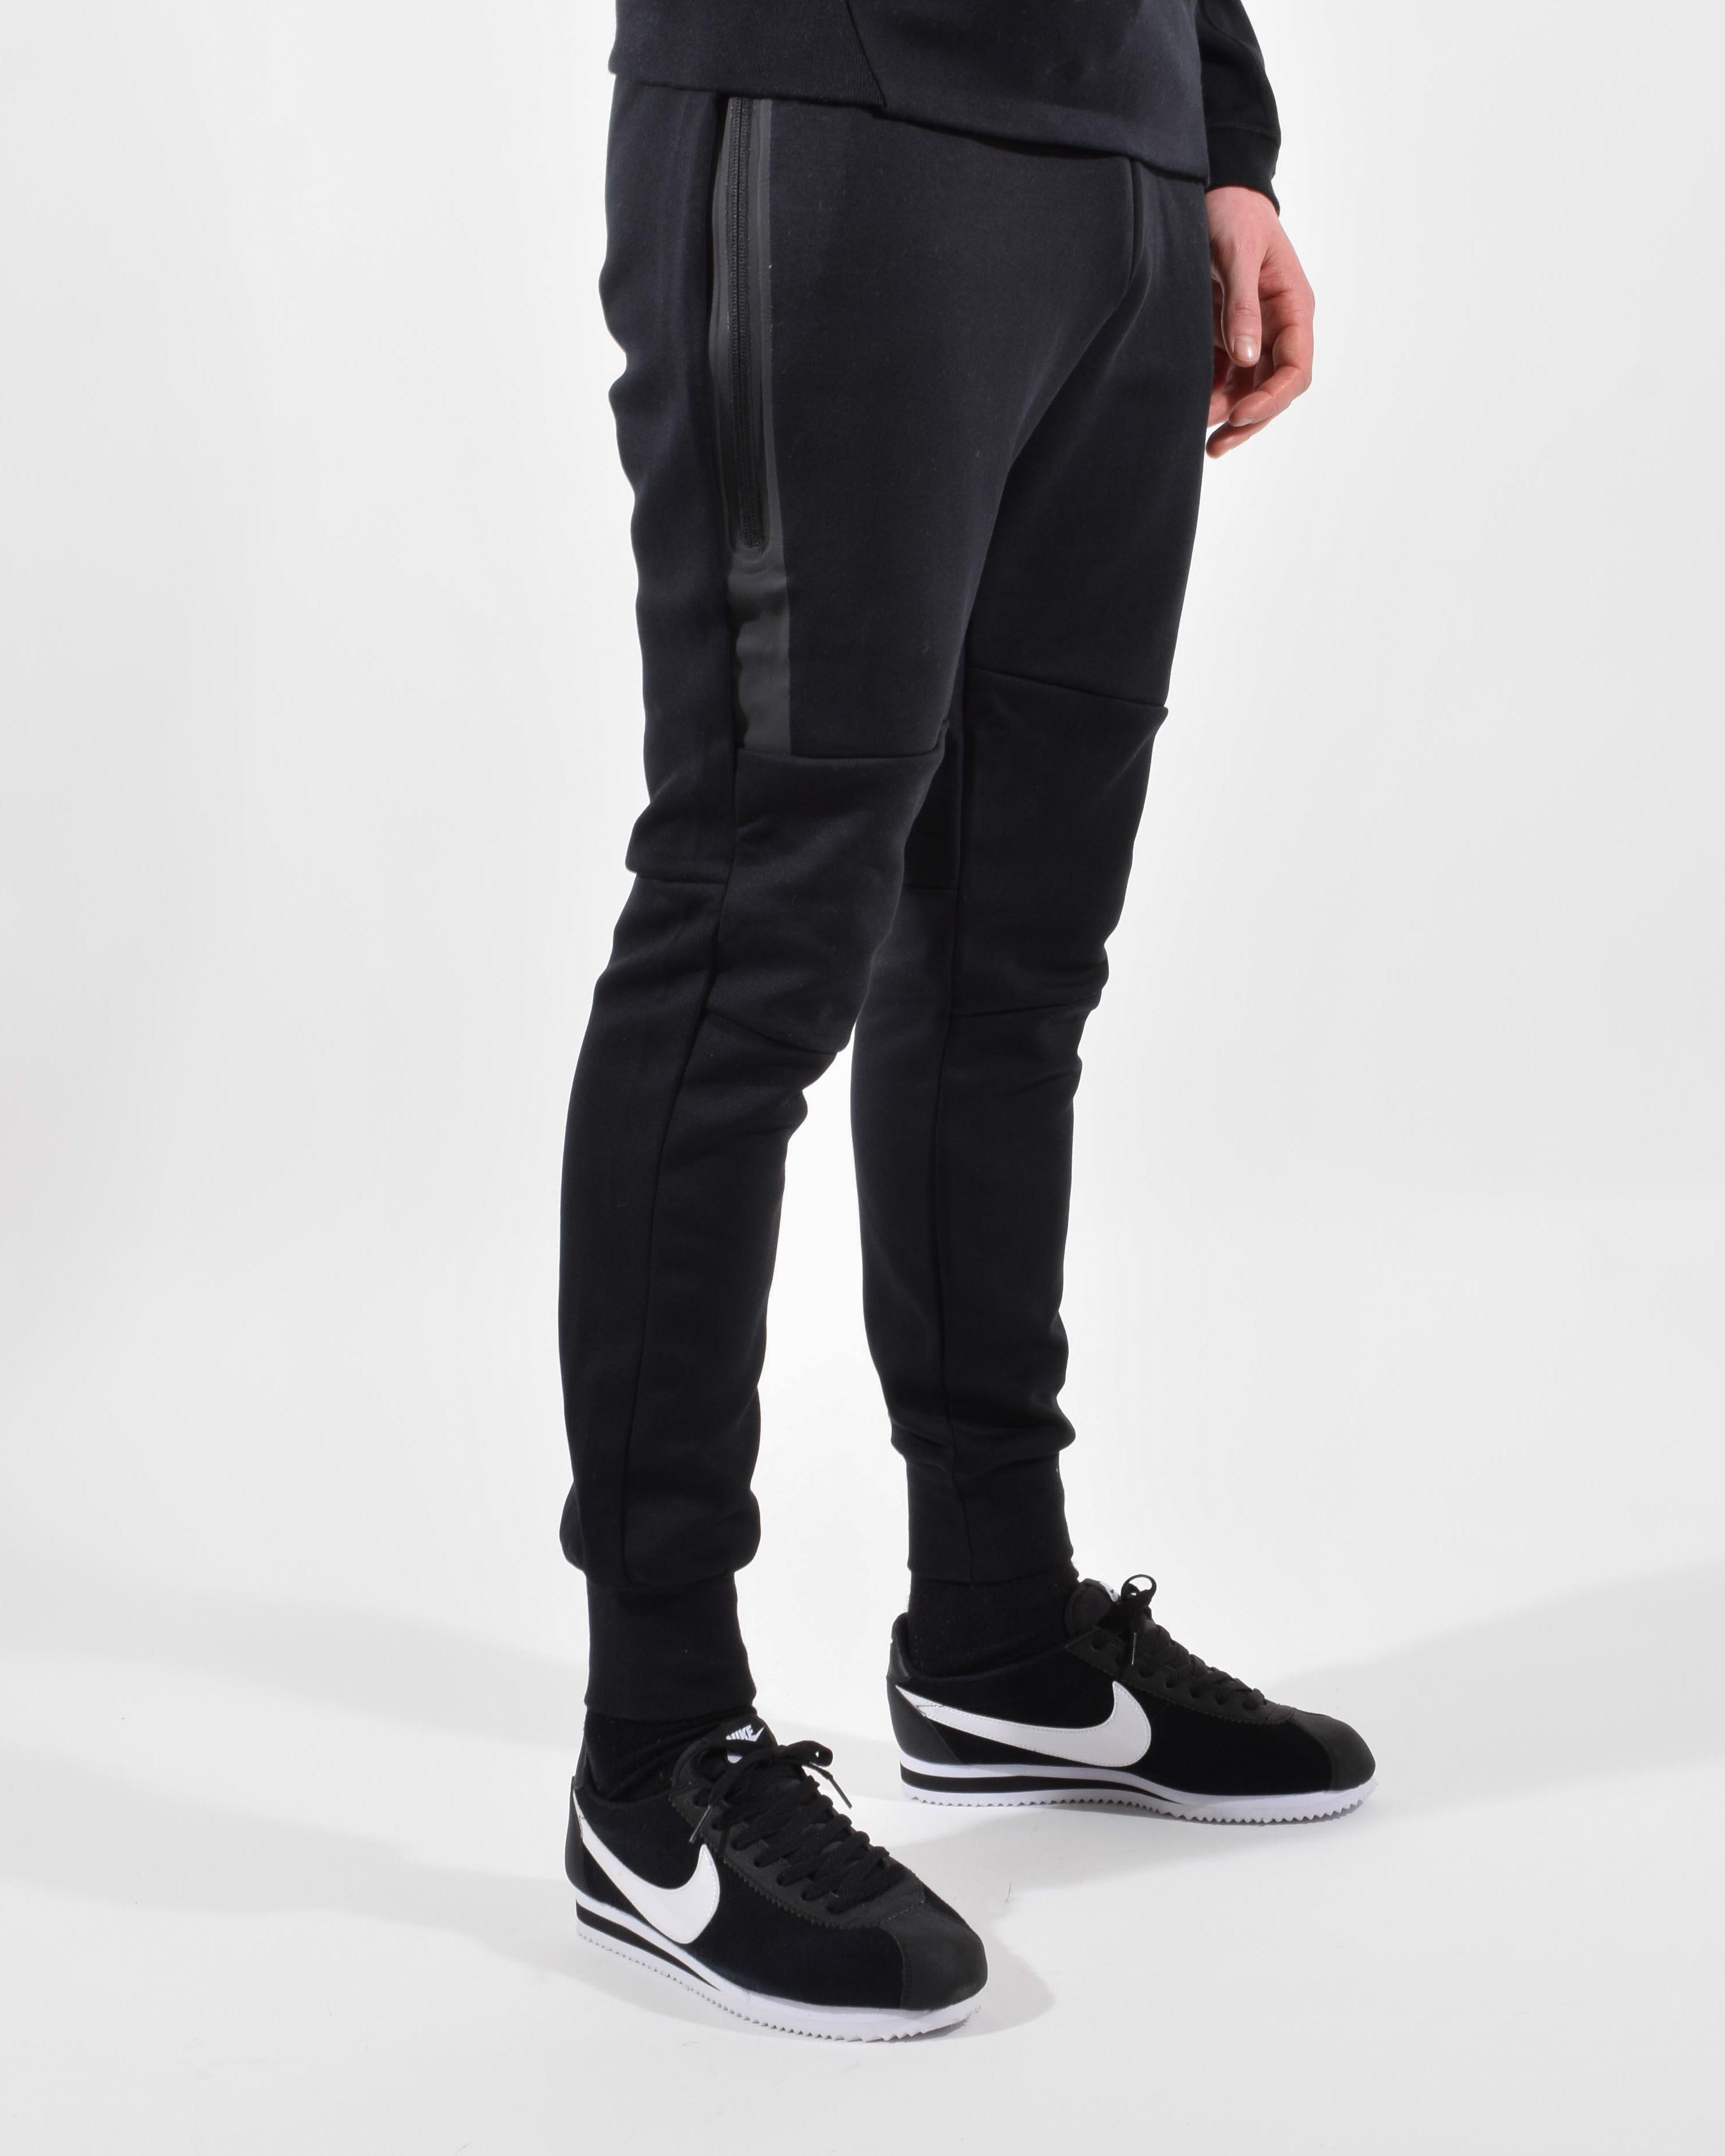 017887188526 Nike Tech Fleece Pants Black Size 32 - for Sale - Grailed